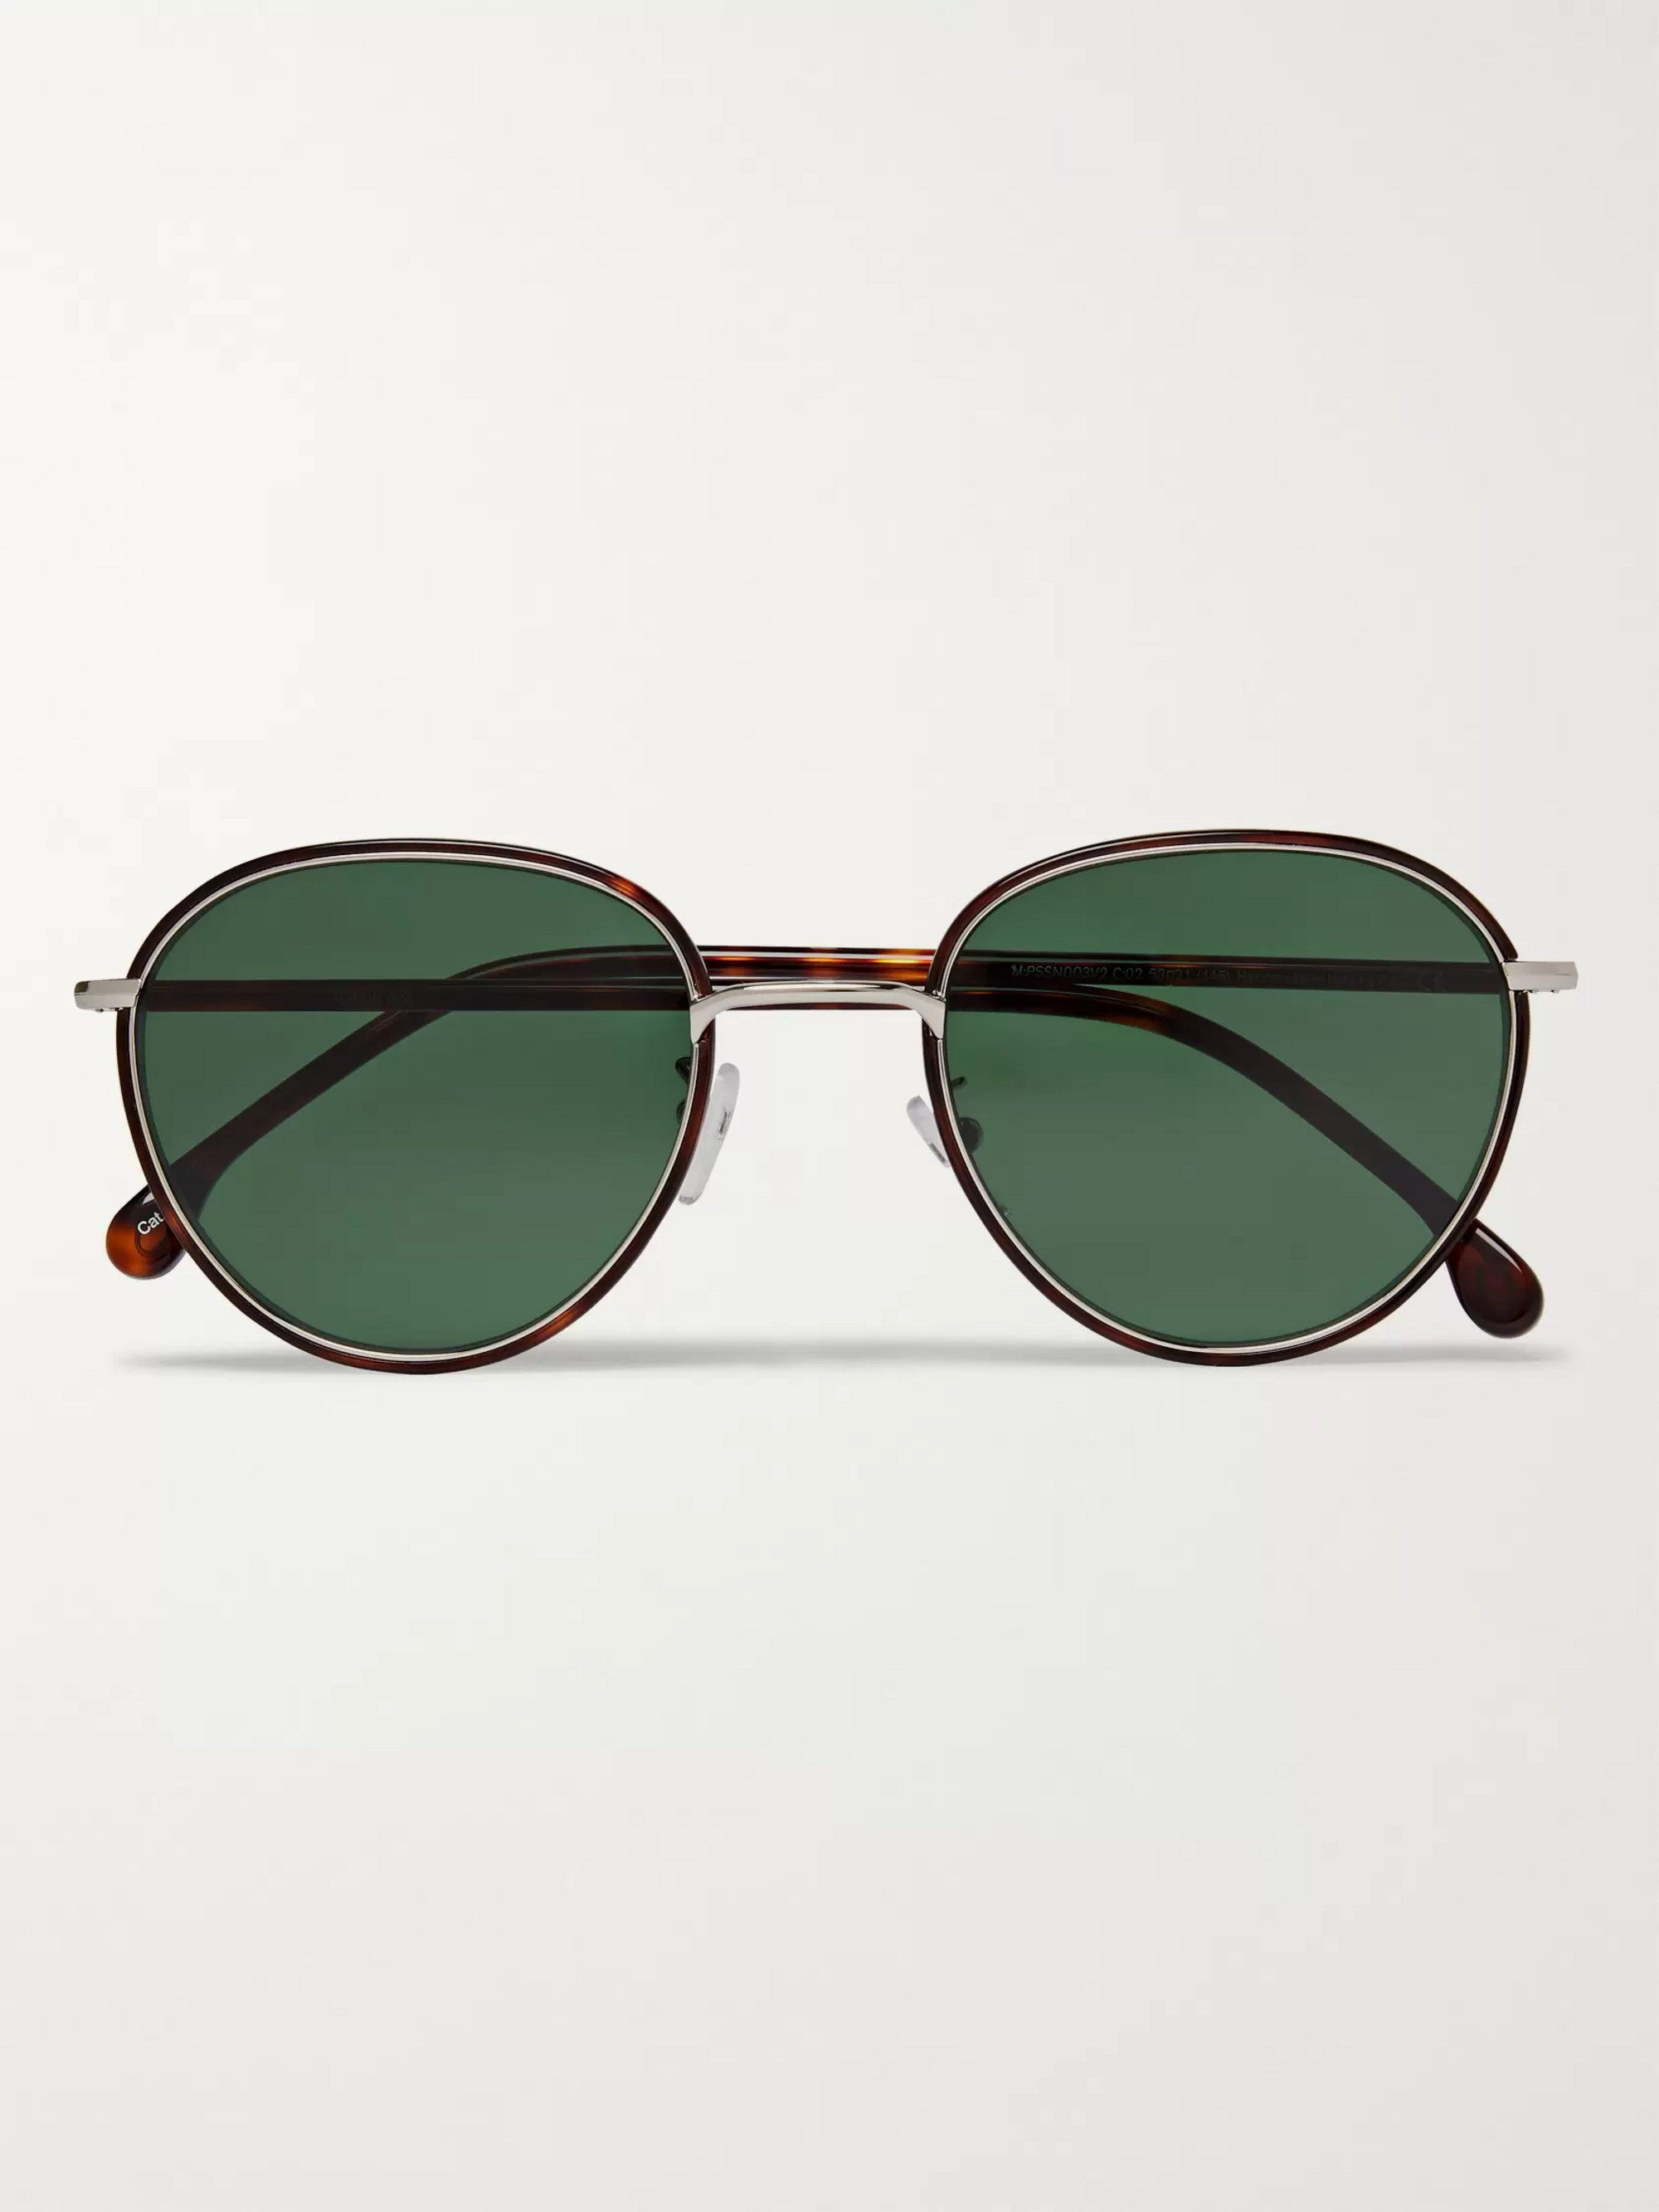 Paul Smith Albion Round-Frame Tortoishell Acetate and Silver-Tone Sunglasses